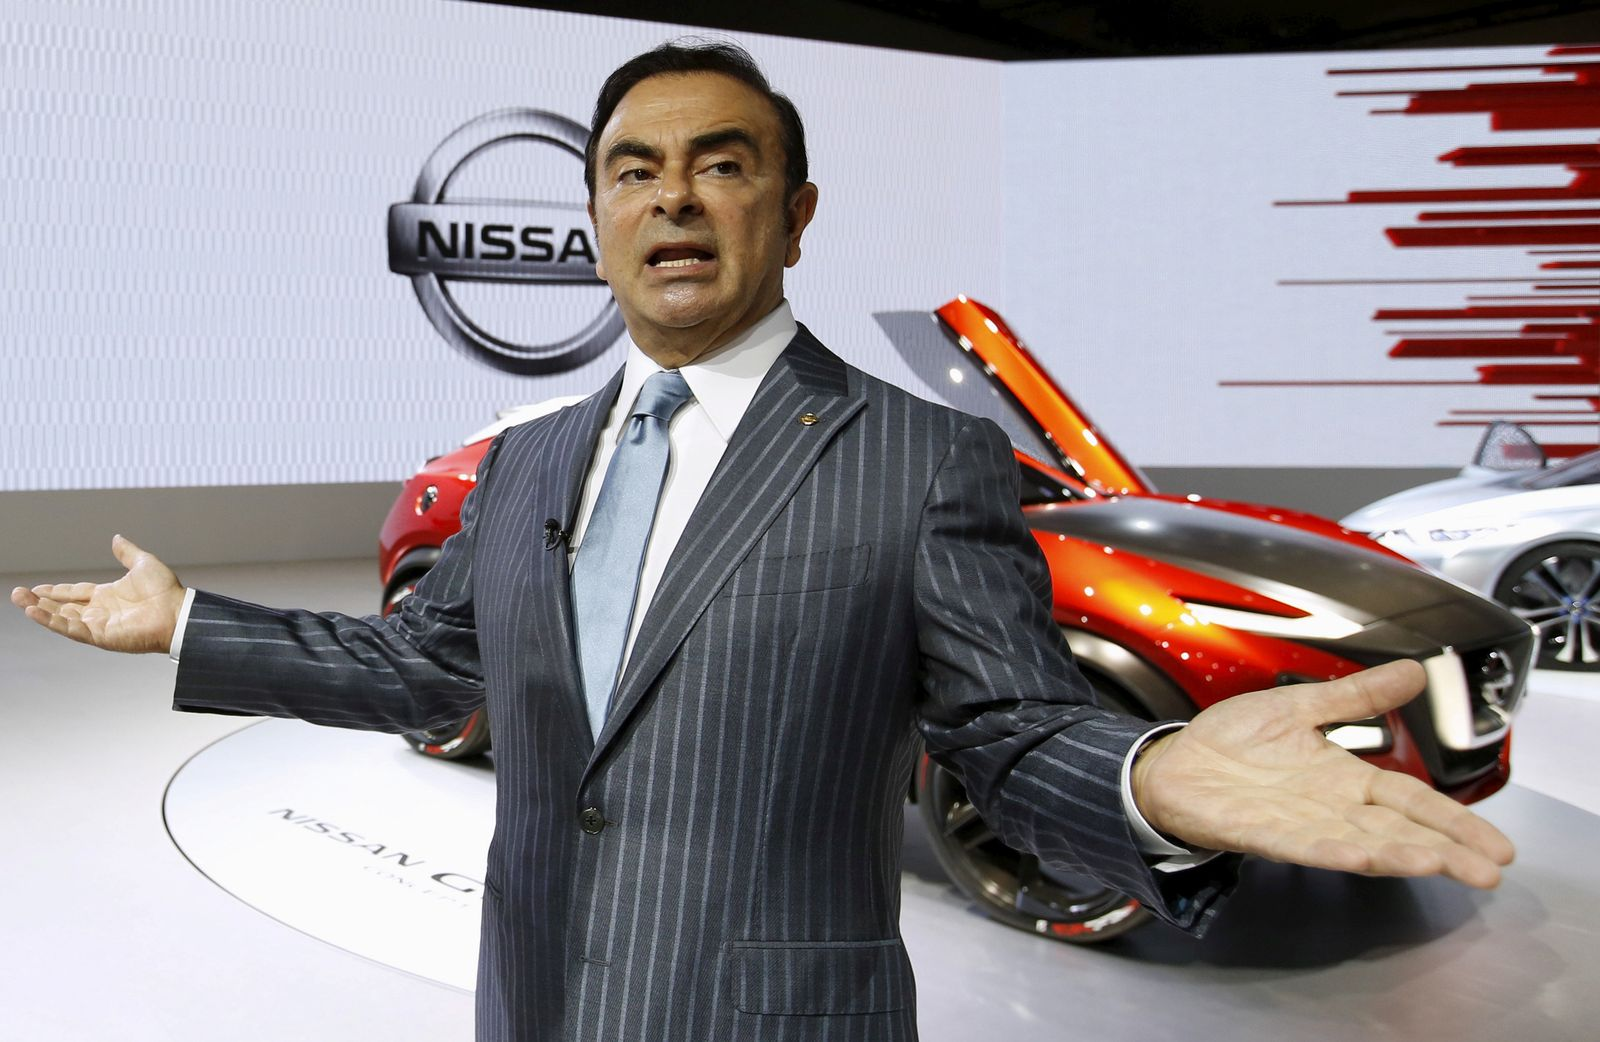 NISSAN-GHOSN/PROBE